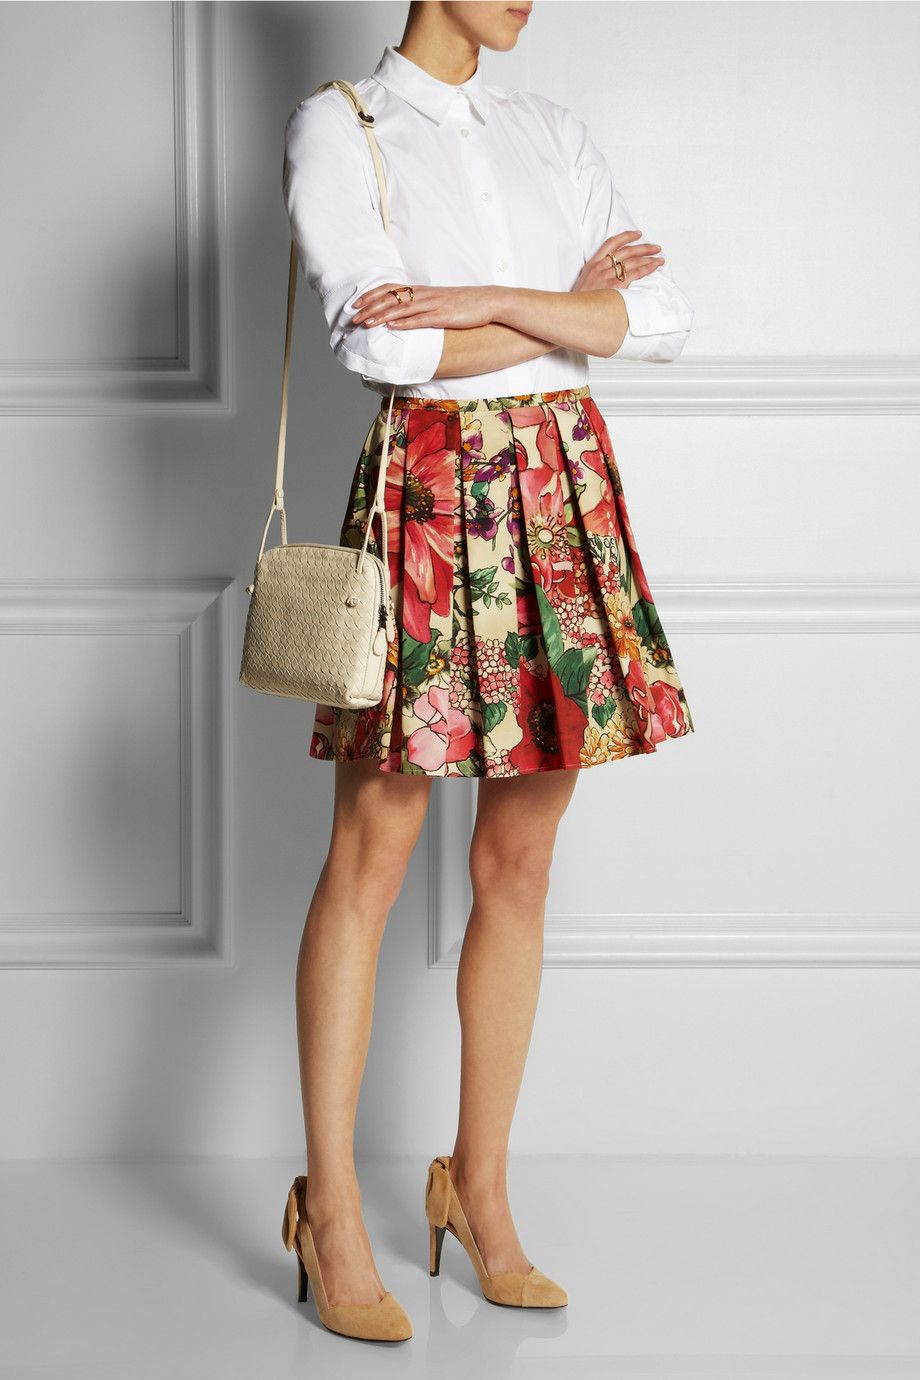 Pleated floral-print skirtand white shirt